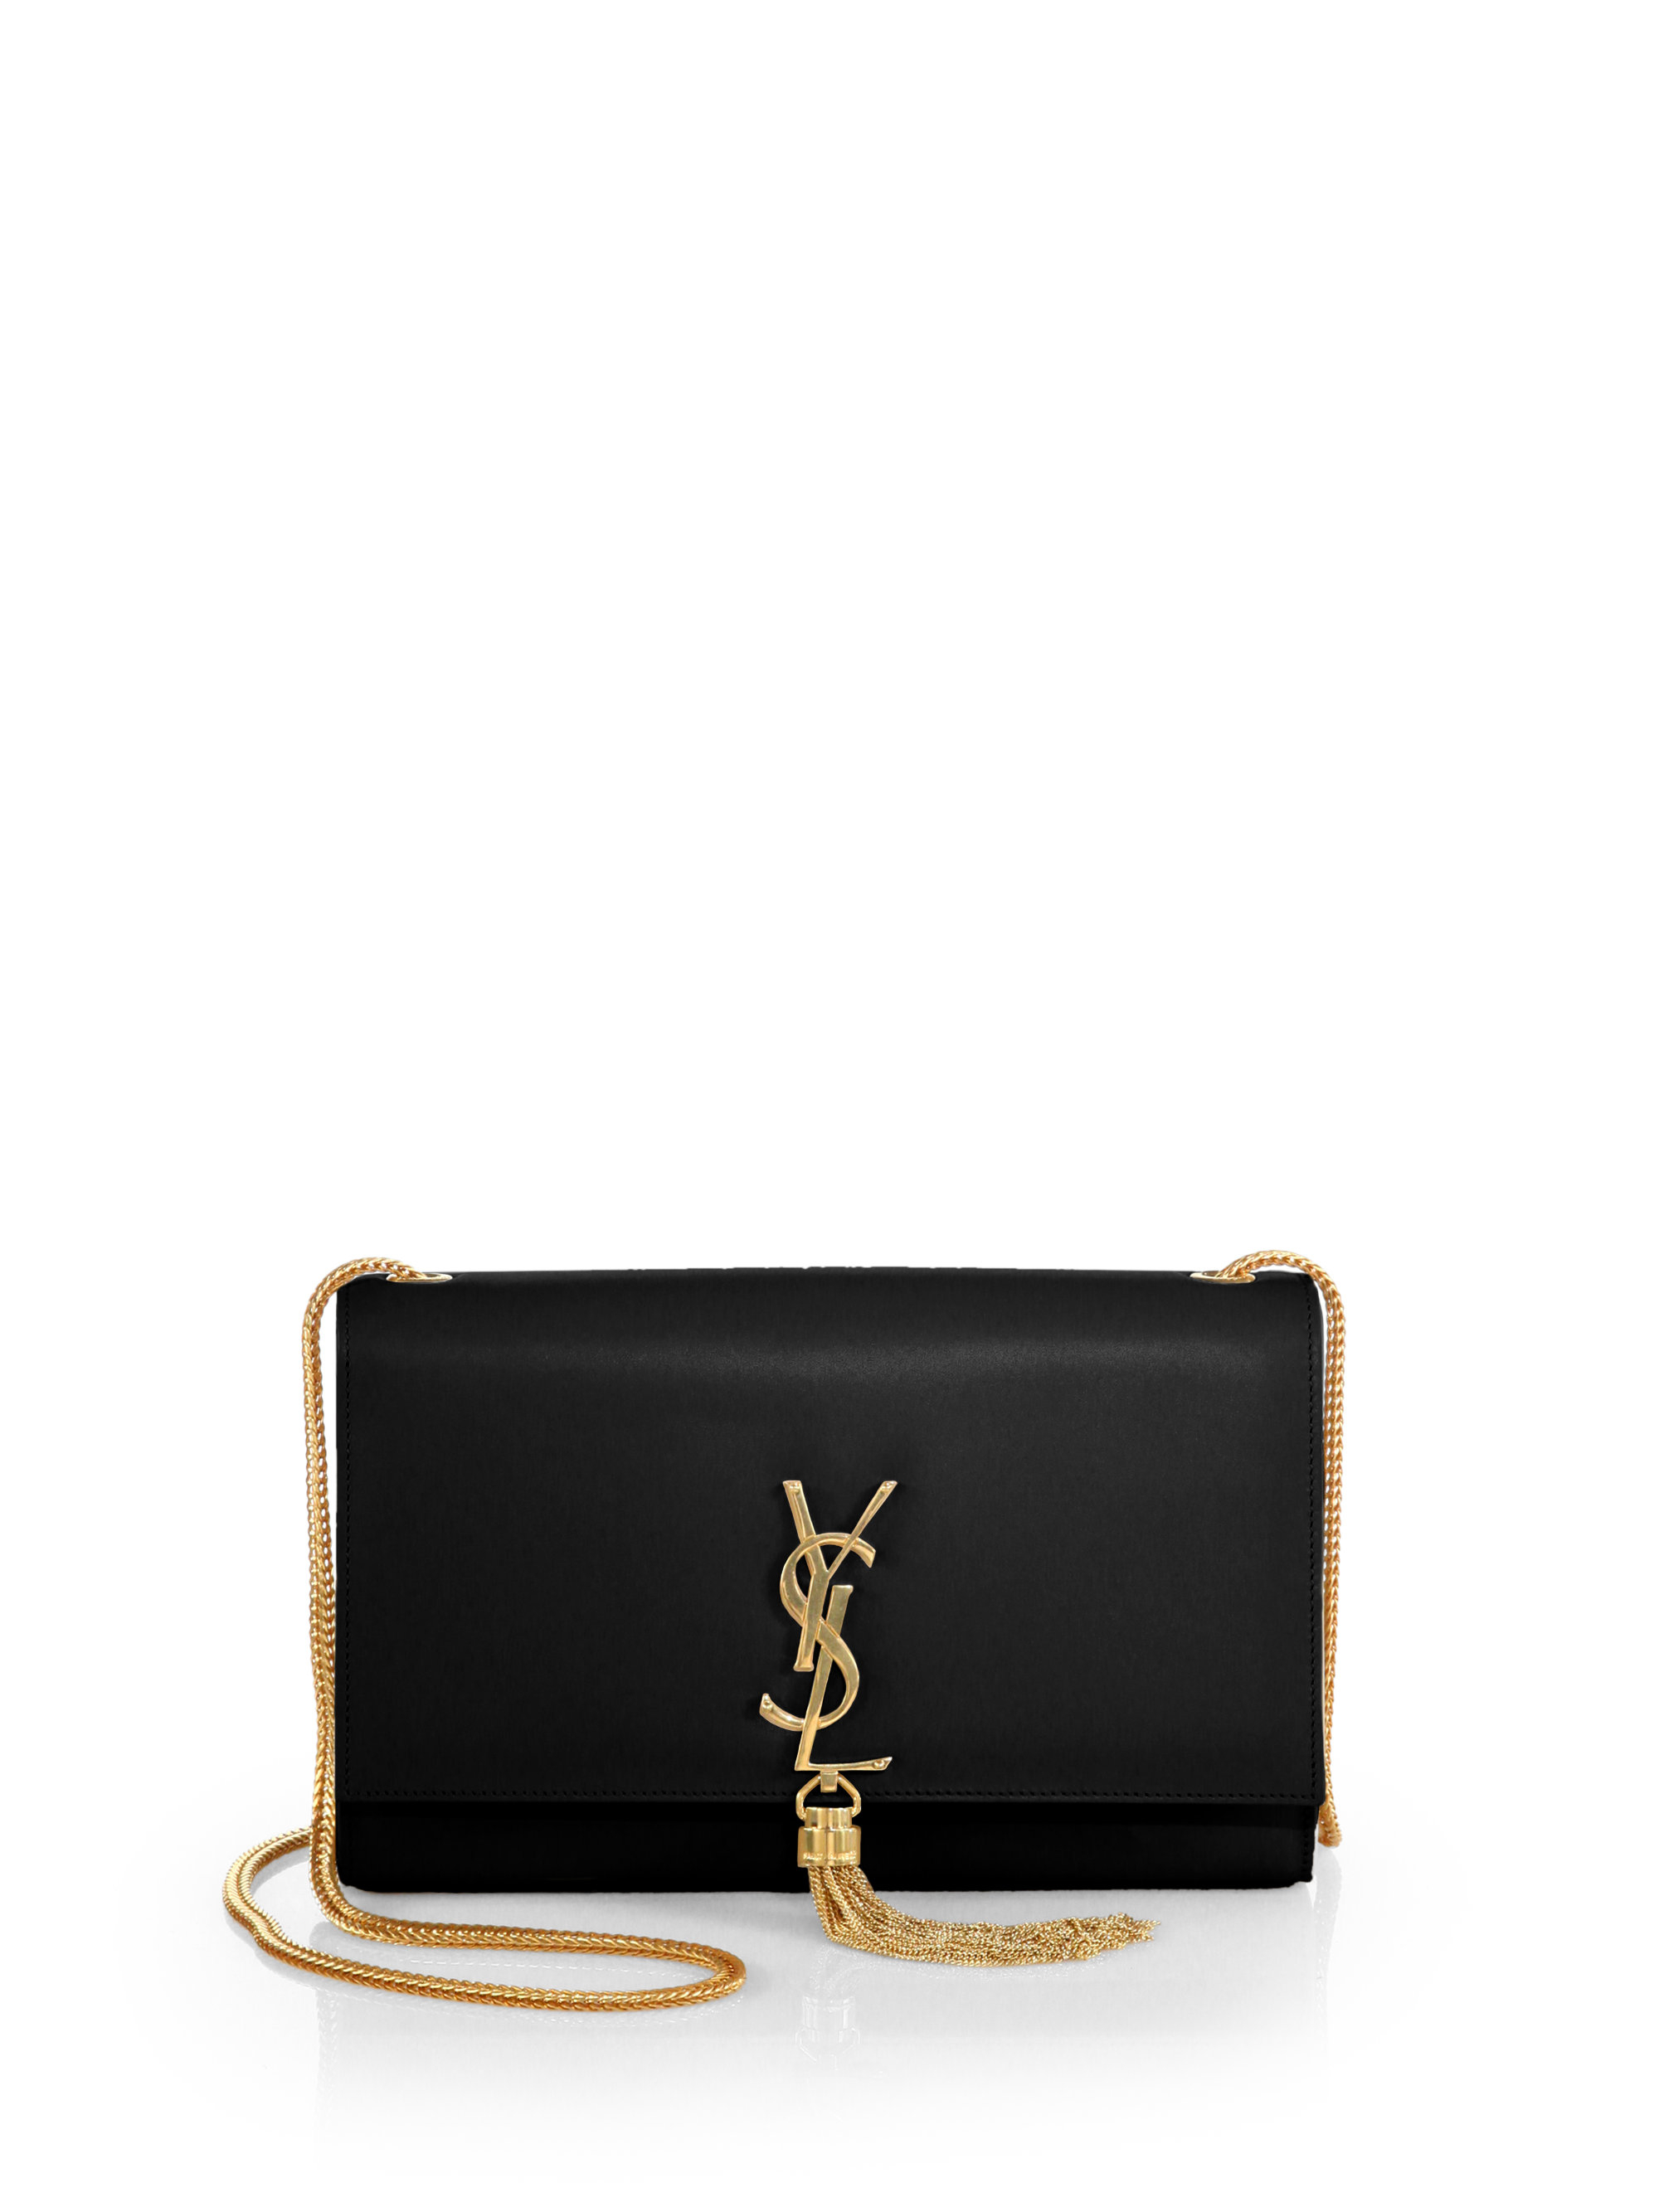 ysl belle du jour clutch replica